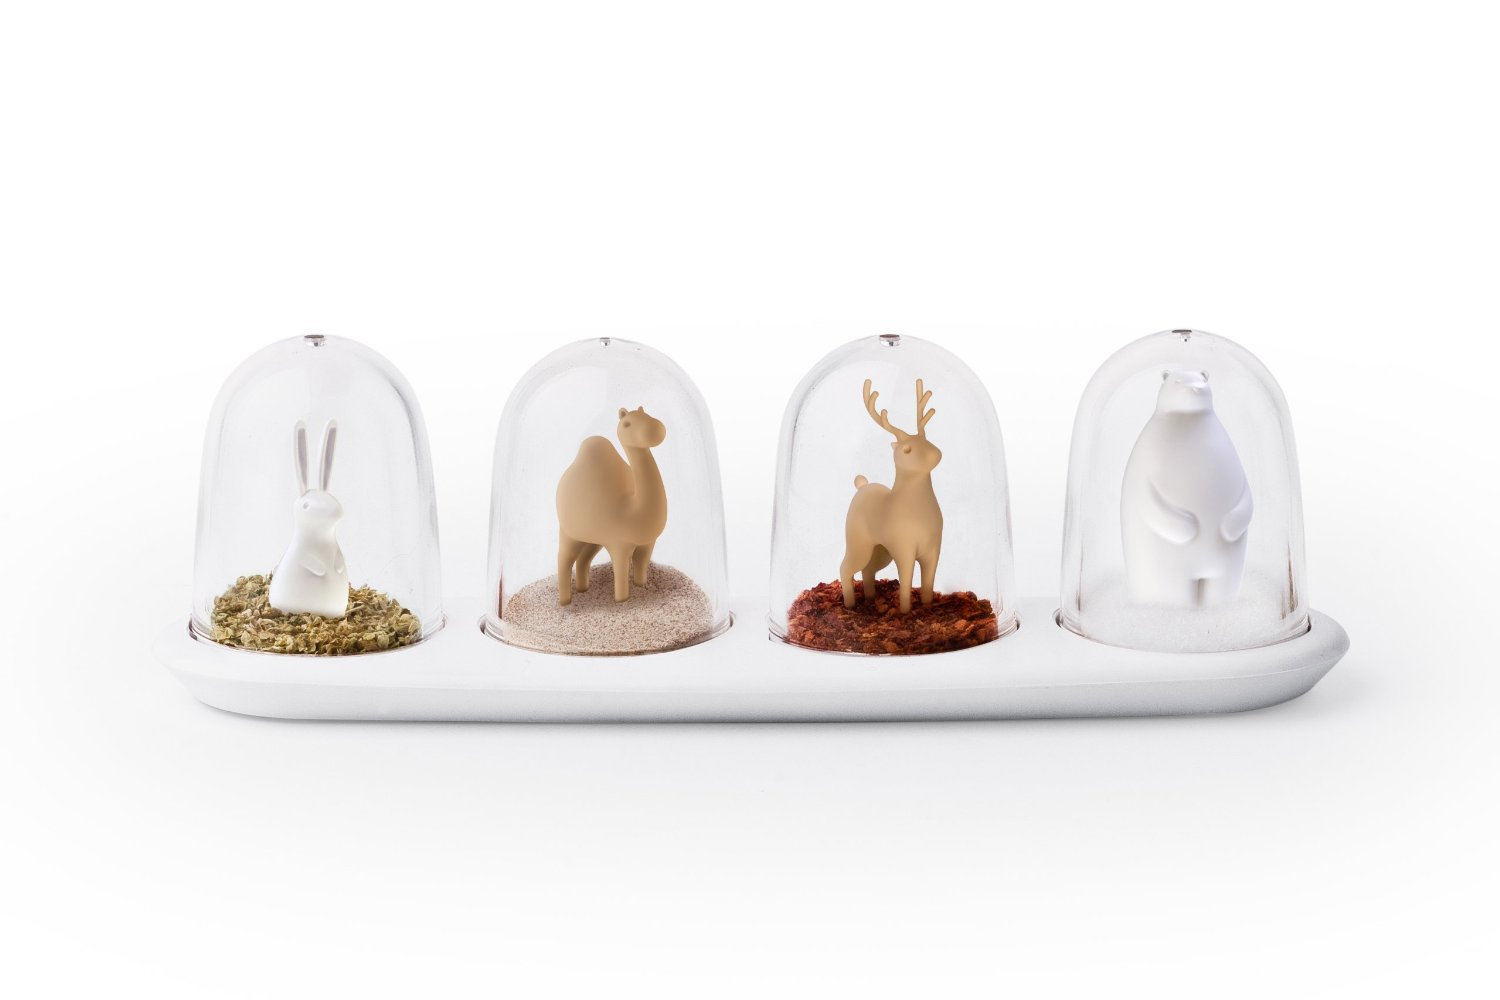 Qualy Animal Parade Seasoning Shakers